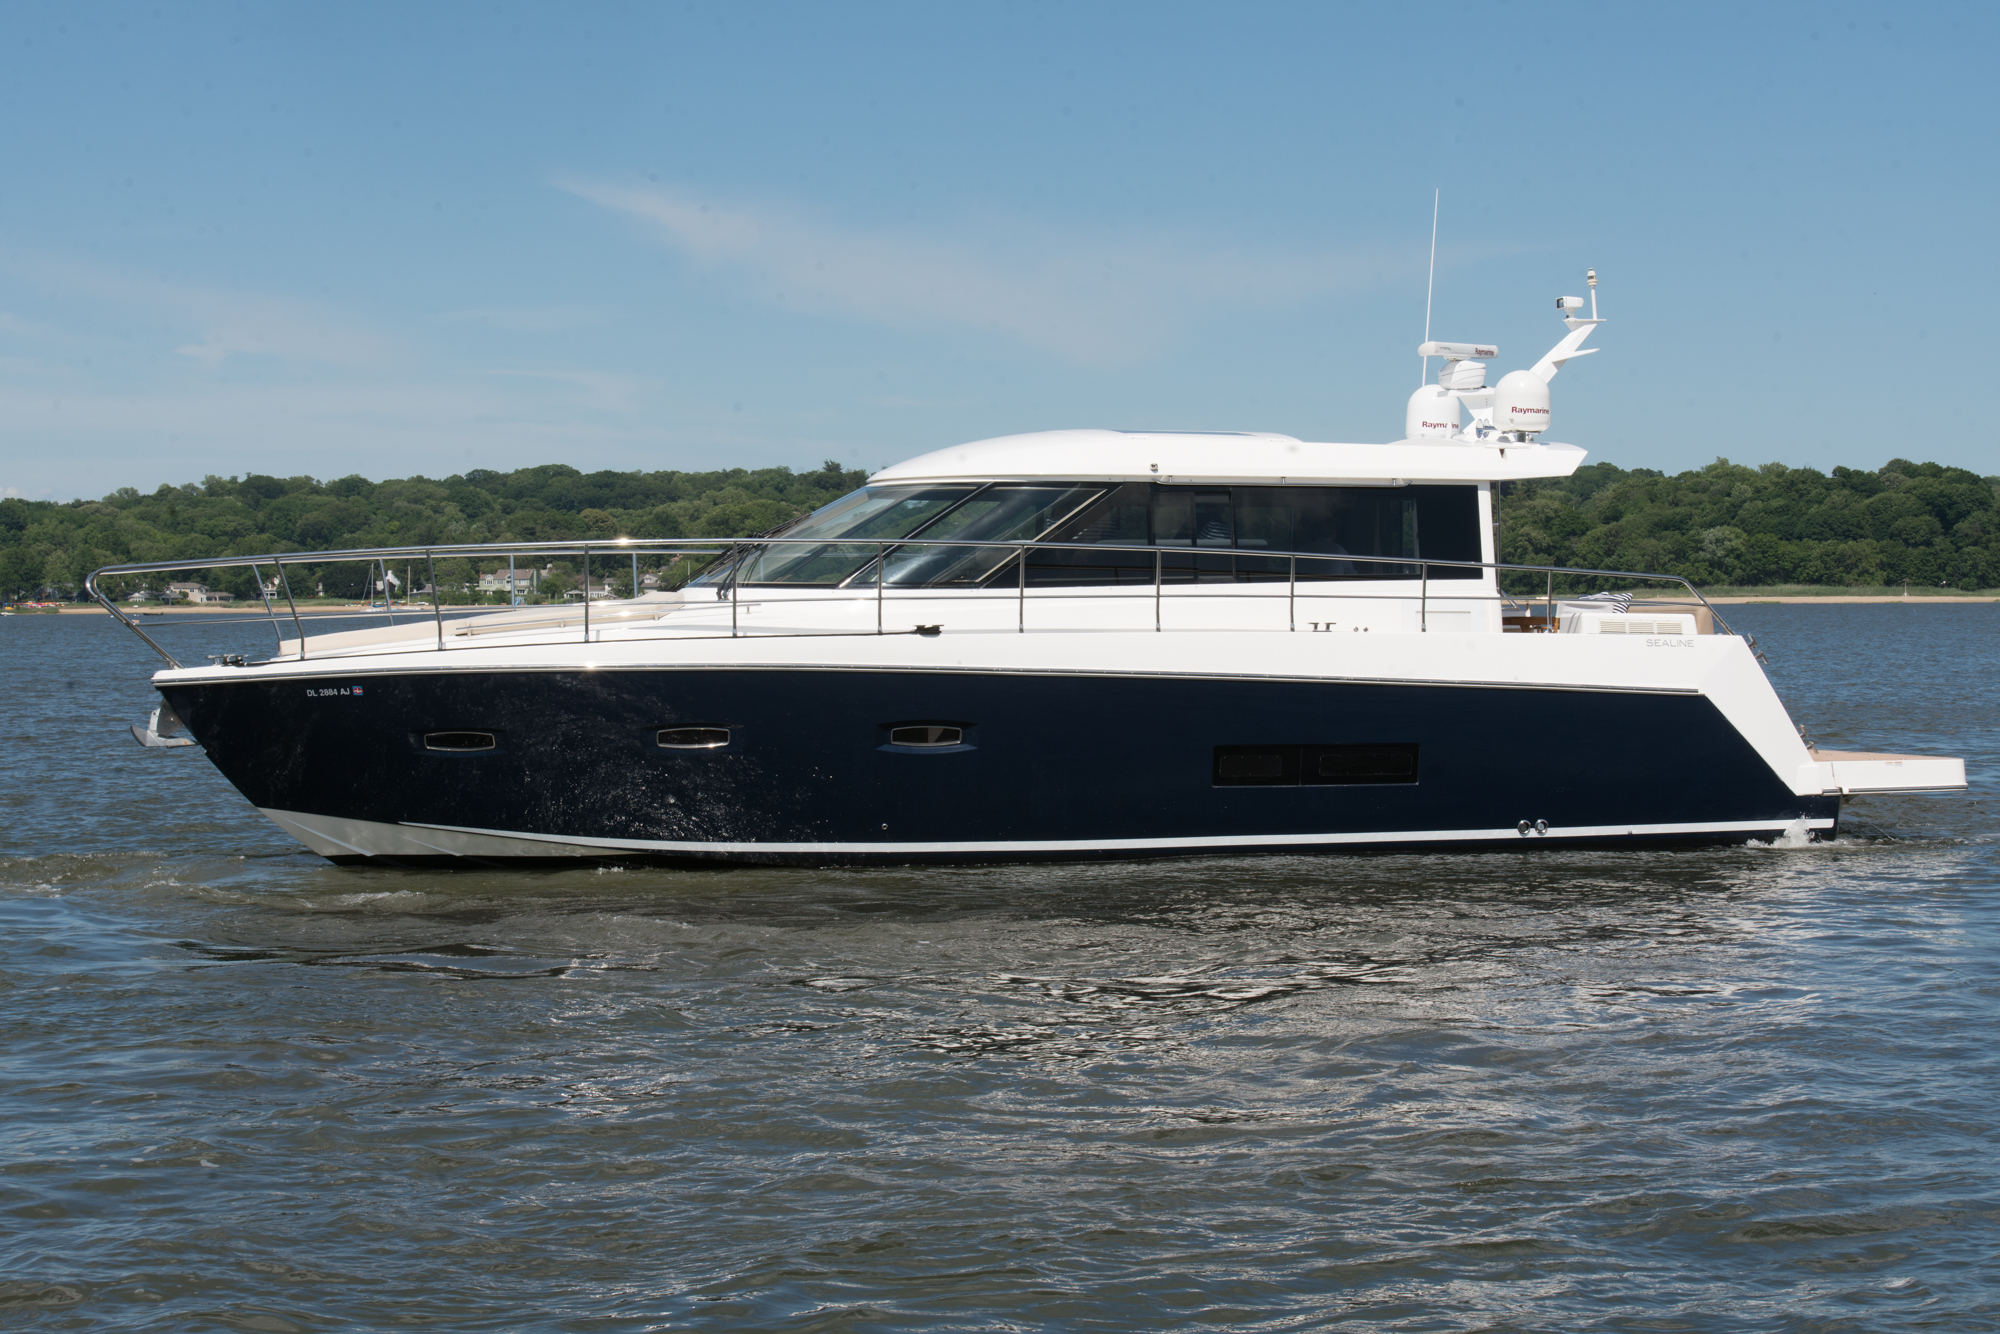 Yacht of the week nutella a 50 foot sealine yacht 26 for 50 ft motor yachts for sale